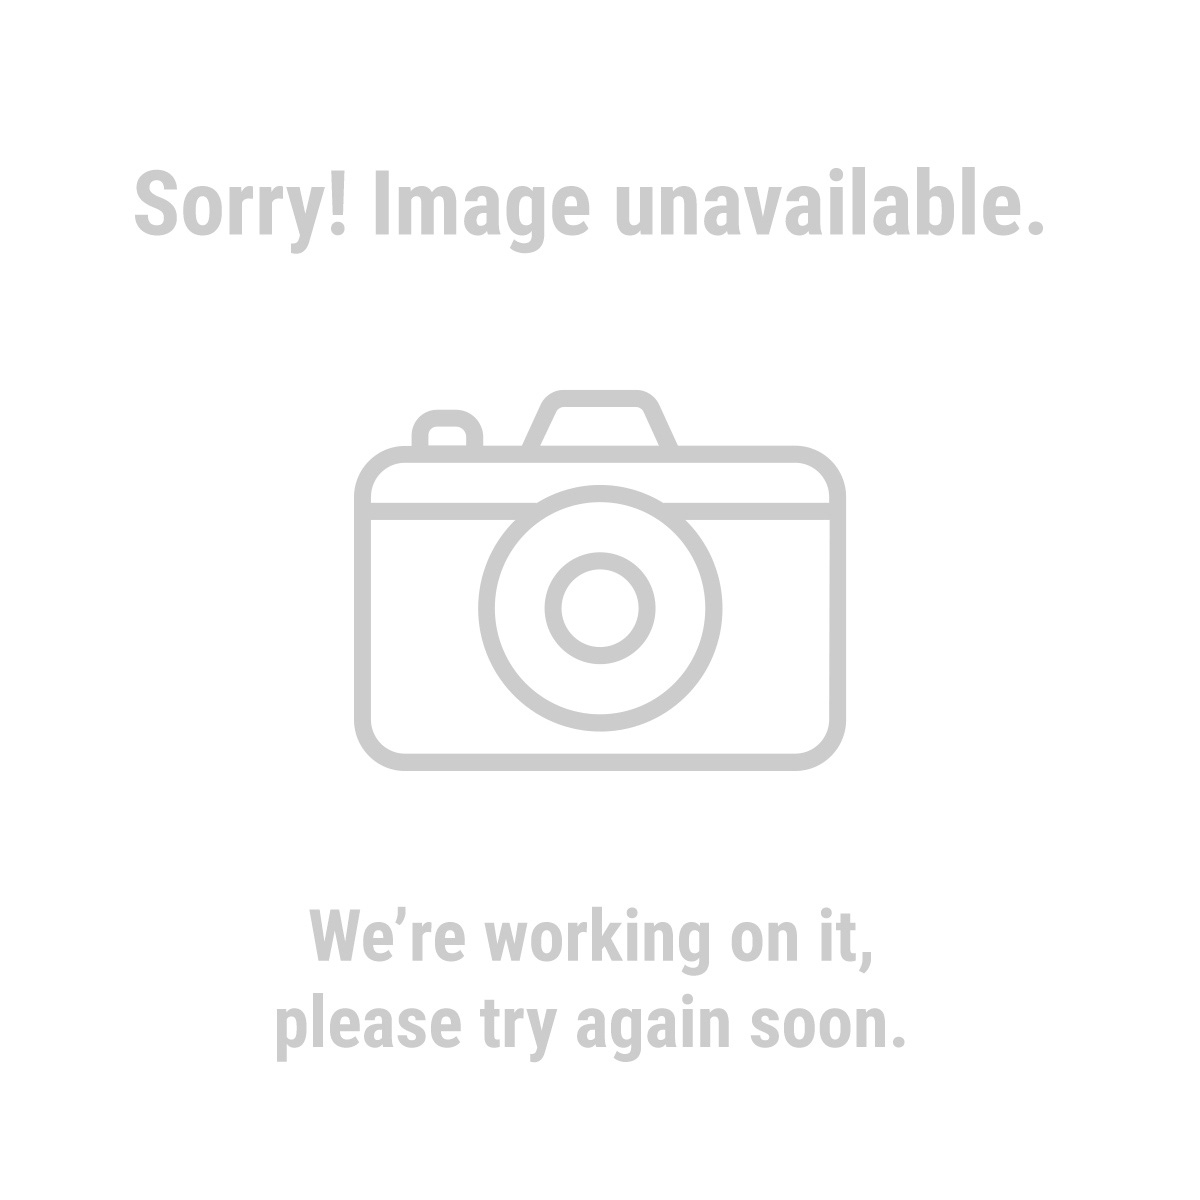 Central Machinery 66106 1-1/2 Ton Lever Chain Hoist